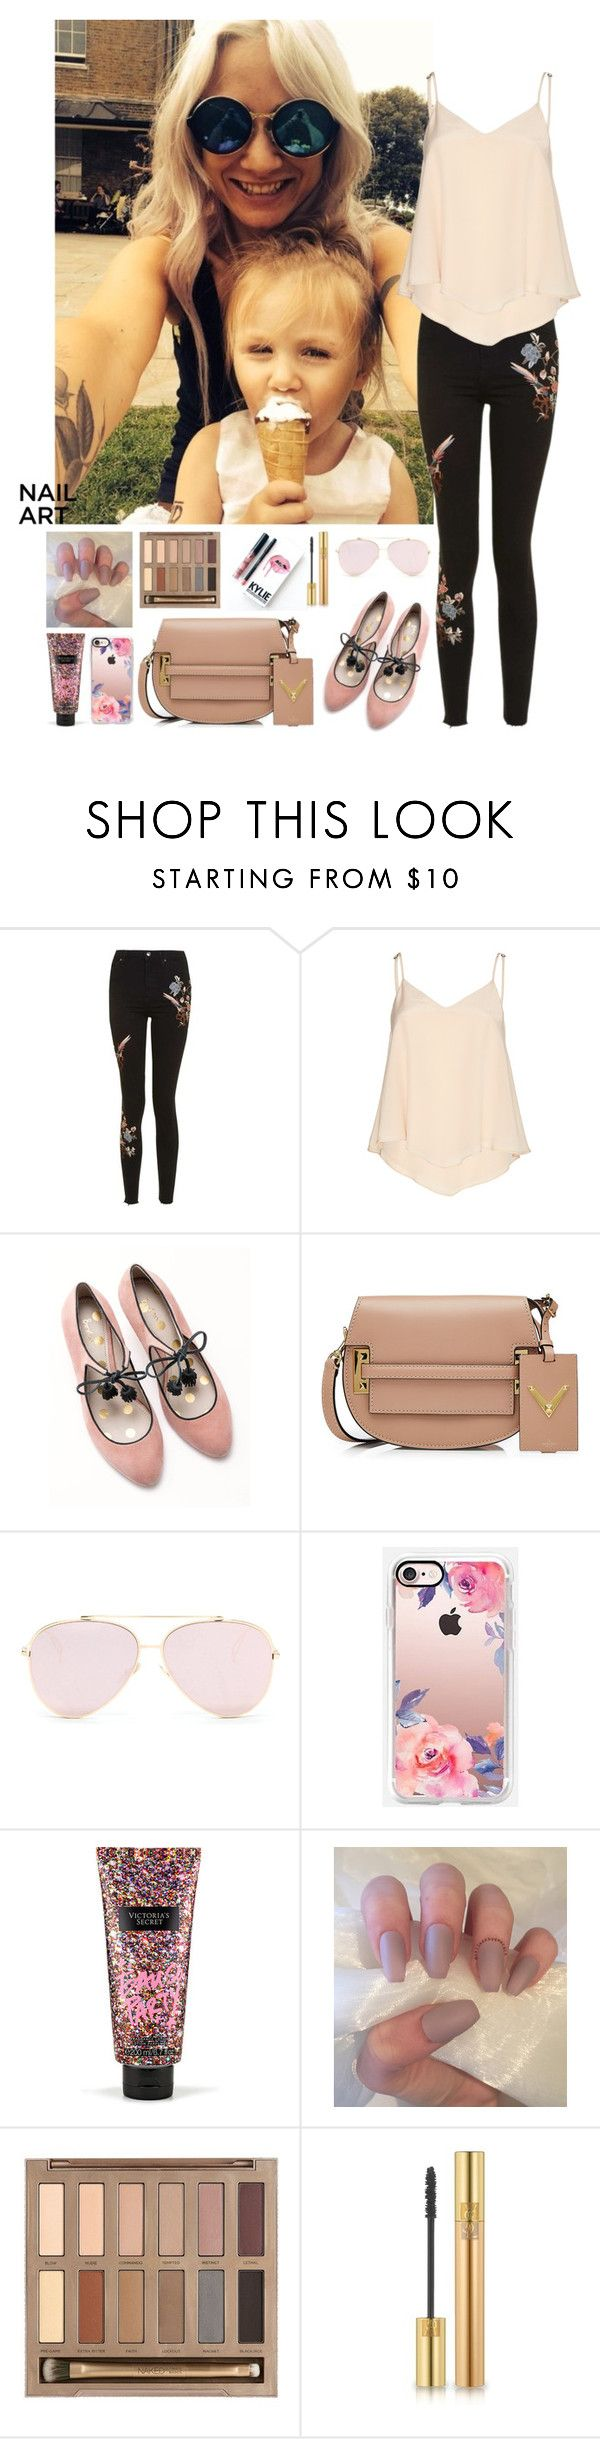 """""""Lou Teasdale #1"""" by ambere3love34 ❤ liked on Polyvore featuring beauty, Topshop, Alice + Olivia, Boden, Valentino, Casetify, Victoria's Secret, Urban Decay, Kylie Cosmetics and Yves Saint Laurent"""